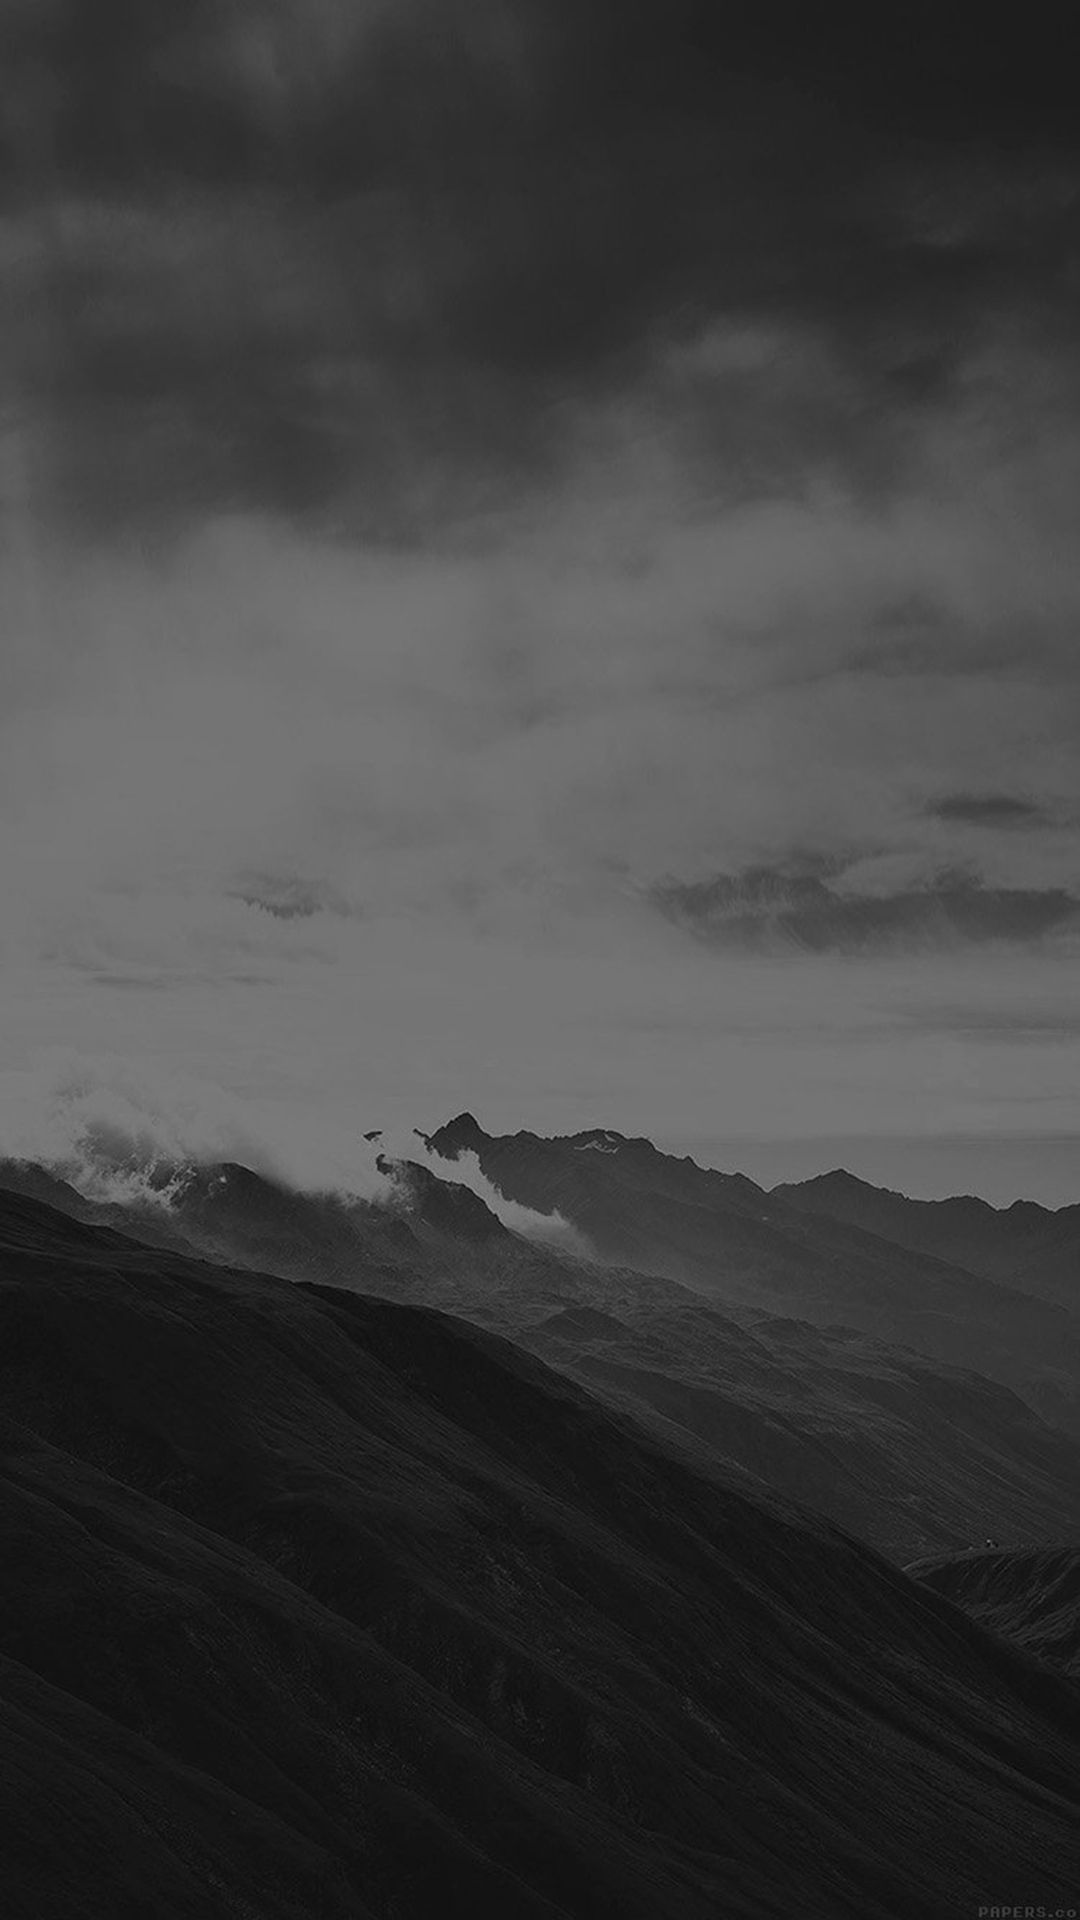 Mountain Art Fog Nature Dark Bw Iphone 6 Plus Wallpaper Black Aesthetic Wallpaper Dark Wallpaper Black Wallpaper